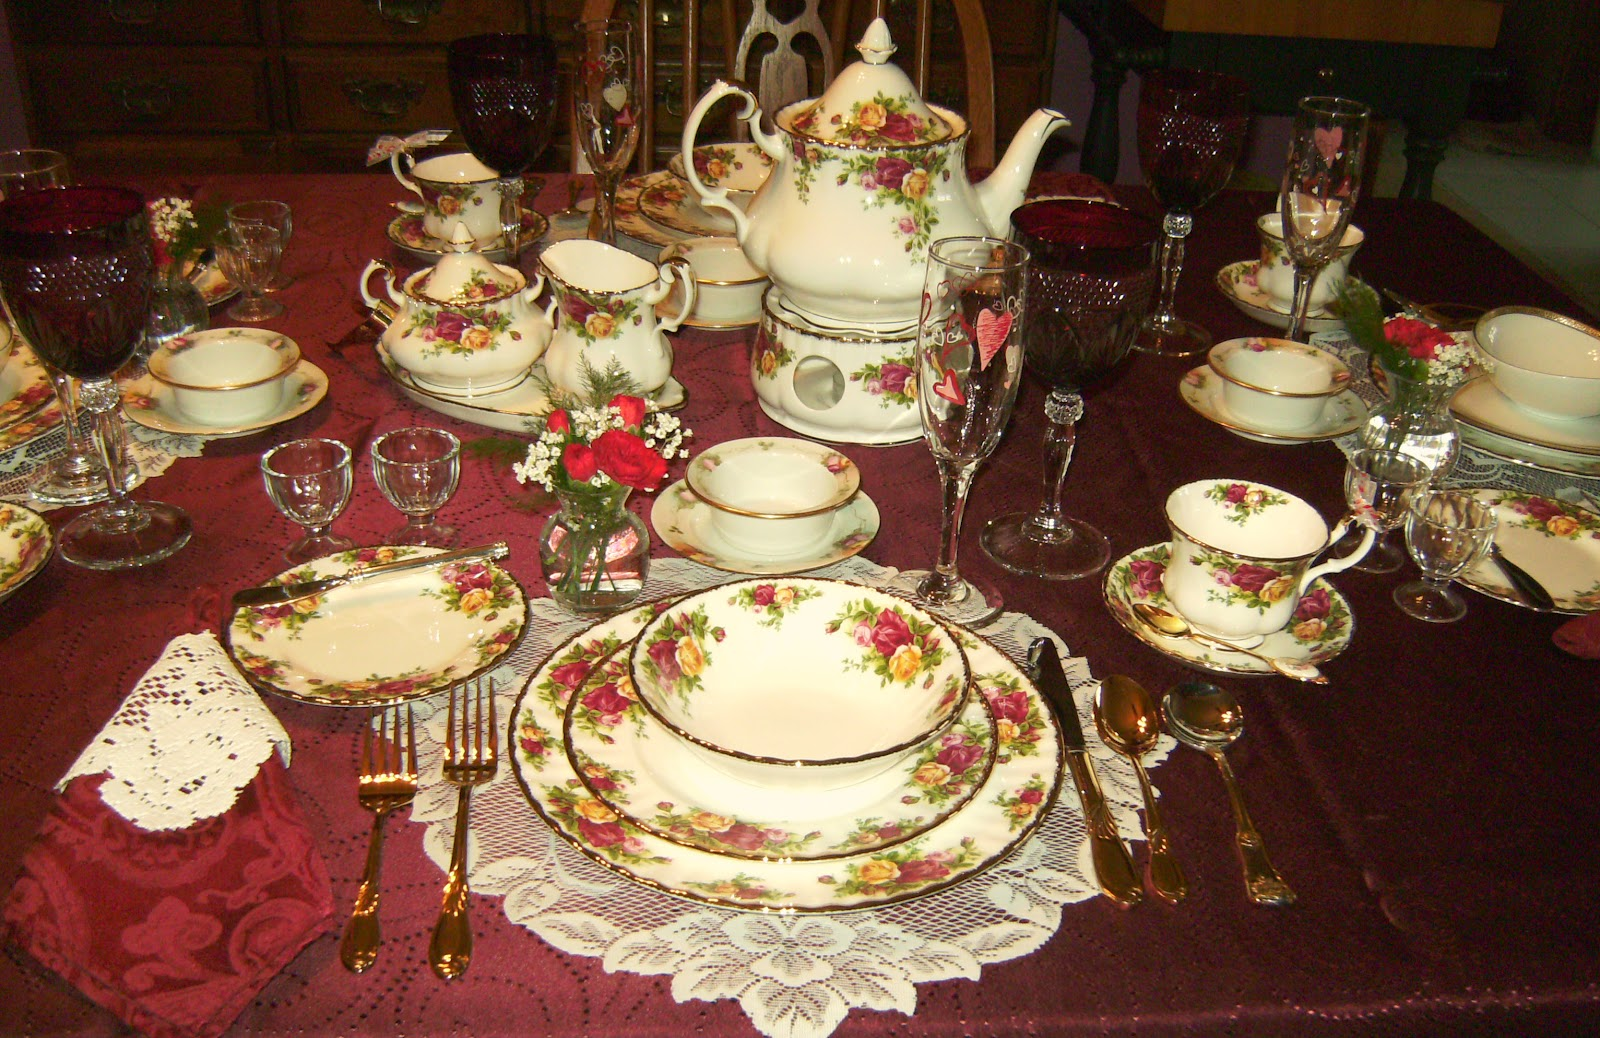 I blogged about a Valentineu0027s tea I gave for my granddaughters here where I used my Old Country Roses China. It sets a beautiful table. & Relevant Tea Leaf: Royal Albert China - Old Country Roses